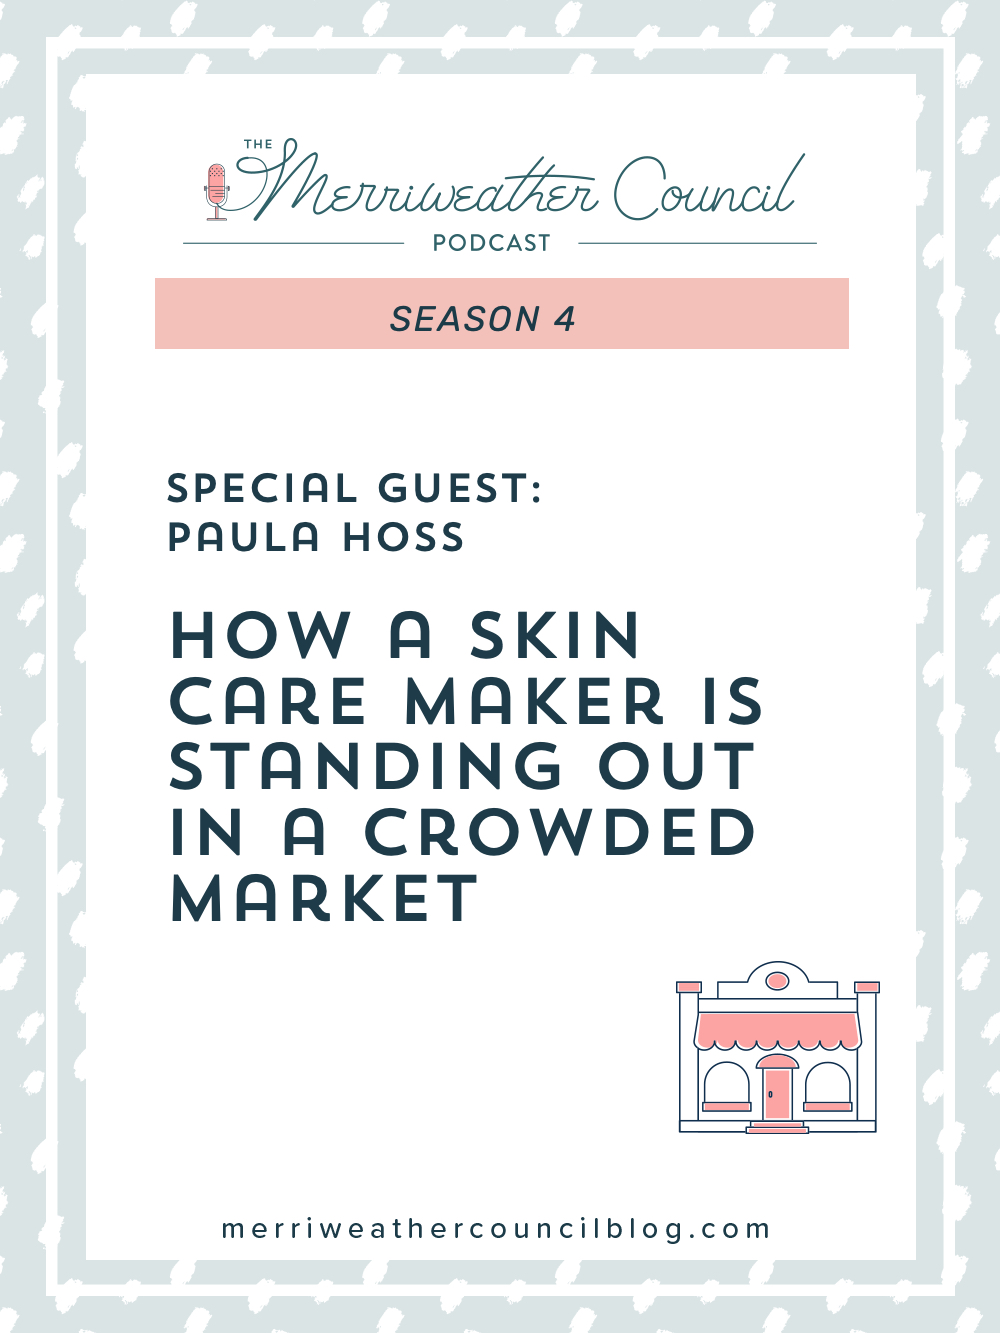 How to Stand Out in a Saturated Market | The Merriweather Council Podcast